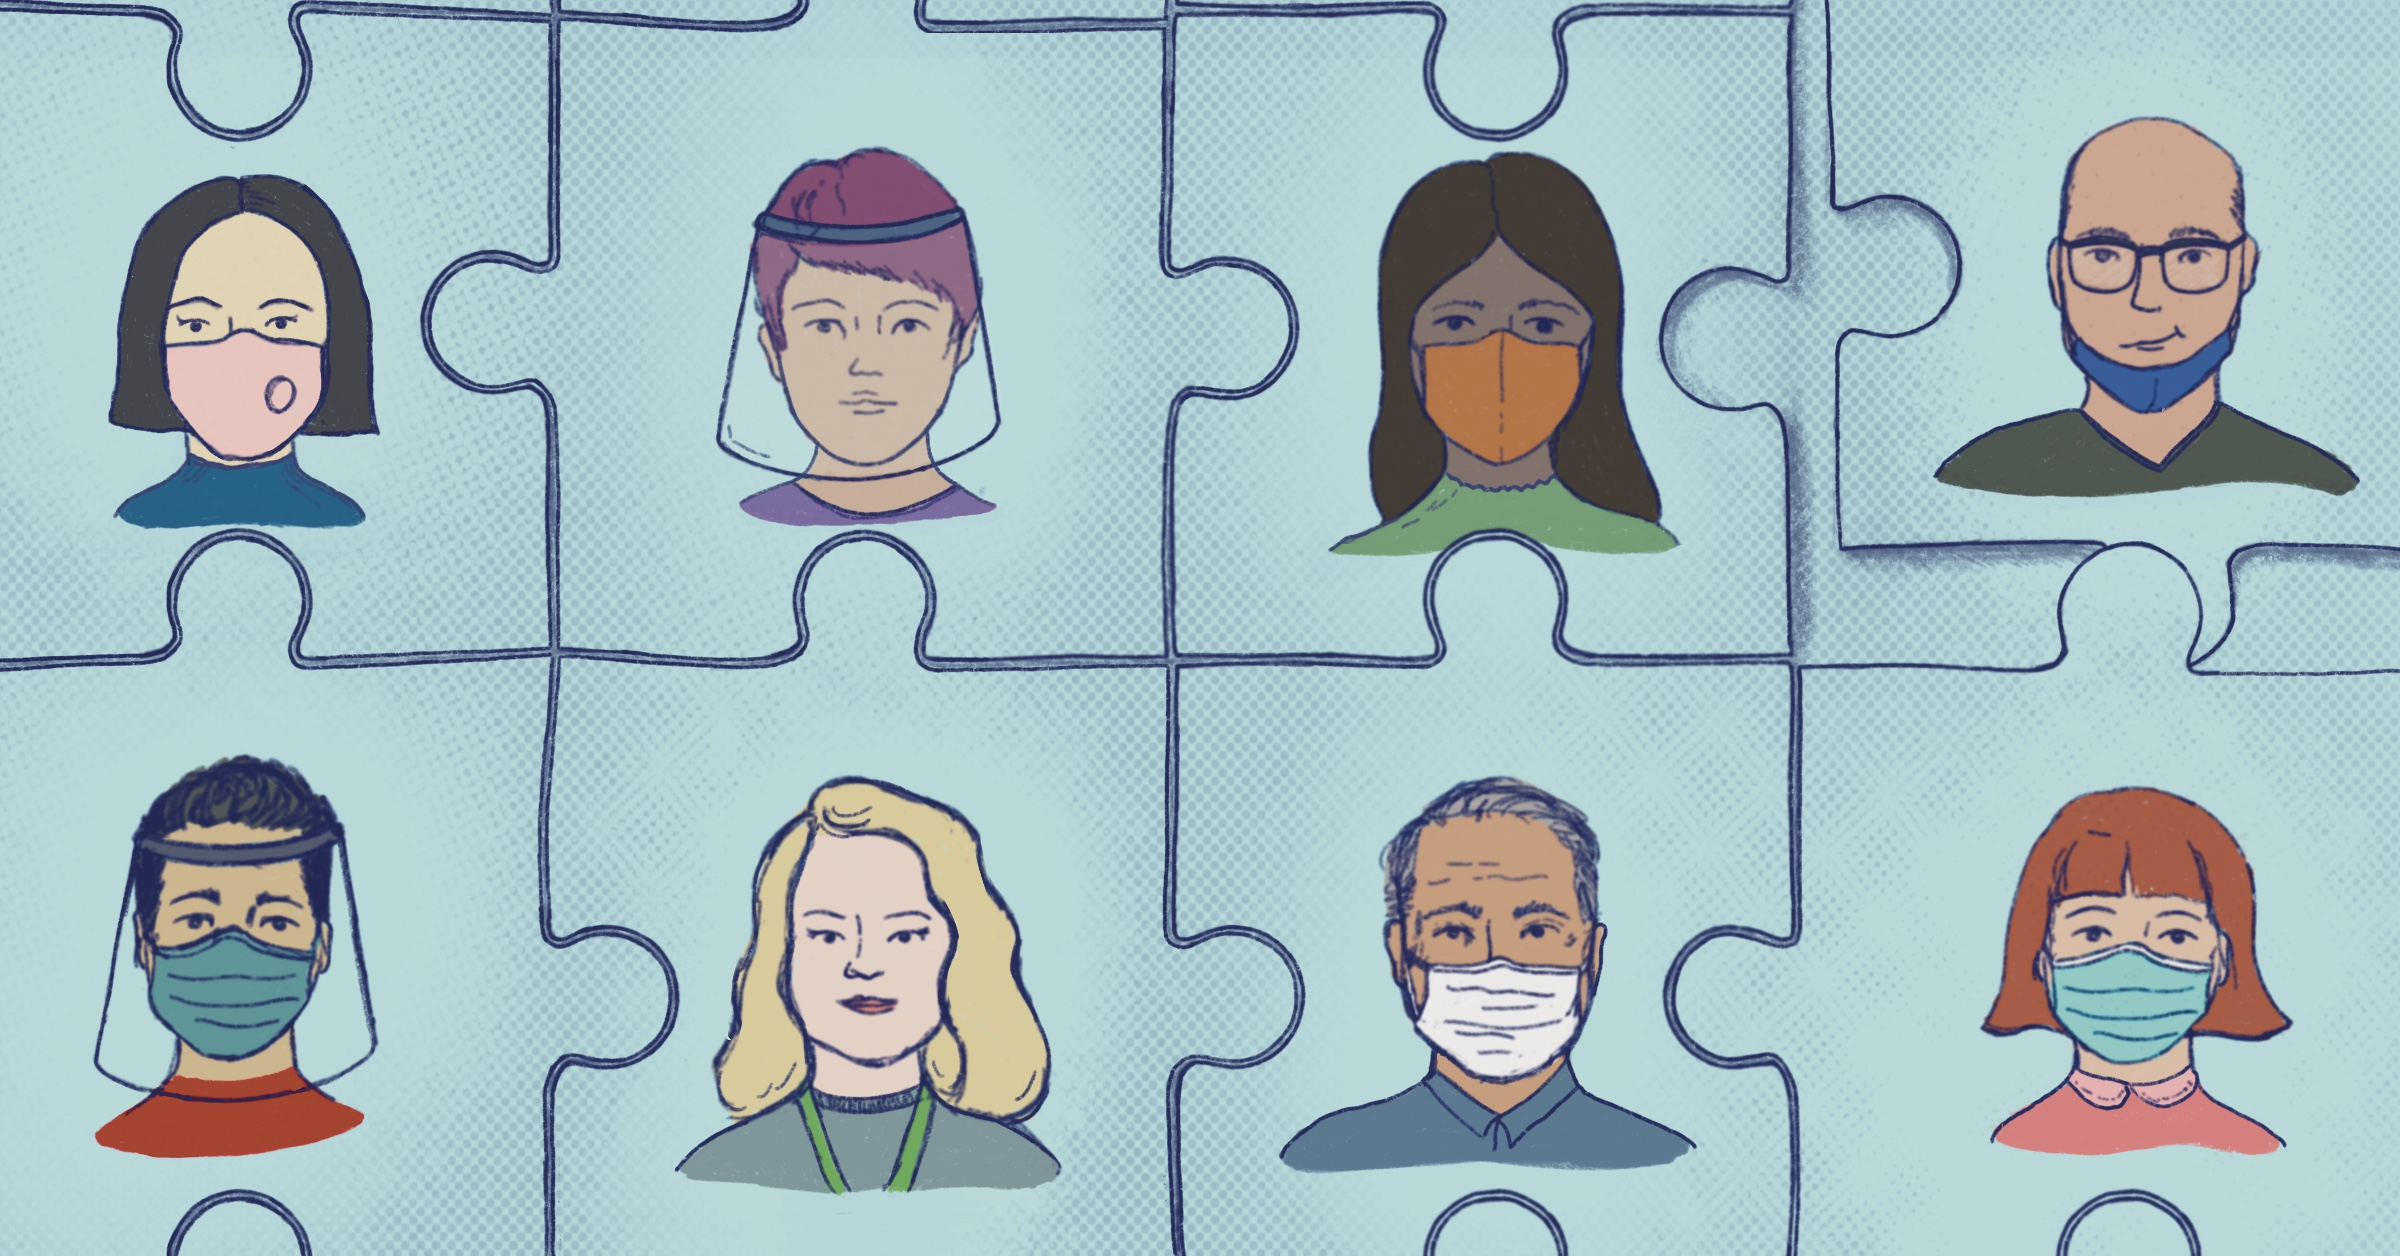 On Selfishness | Have We Been Too Quick To Judge During The Pandemic?